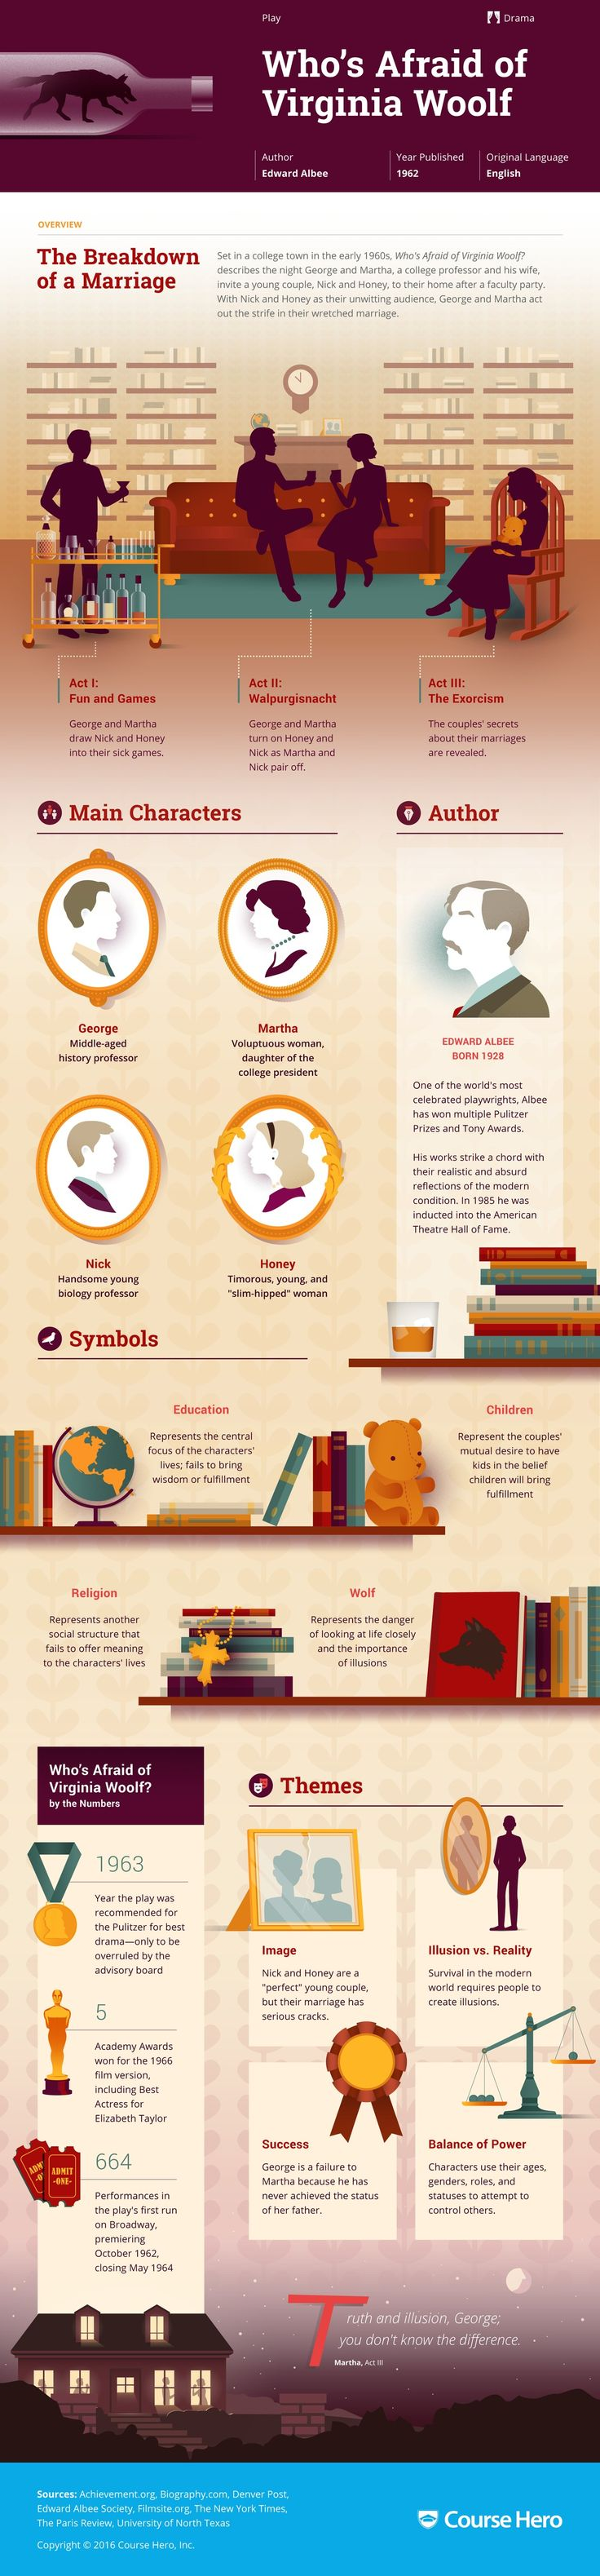 Who's Afraid of Virginia Woolf? Infographic | Course Hero